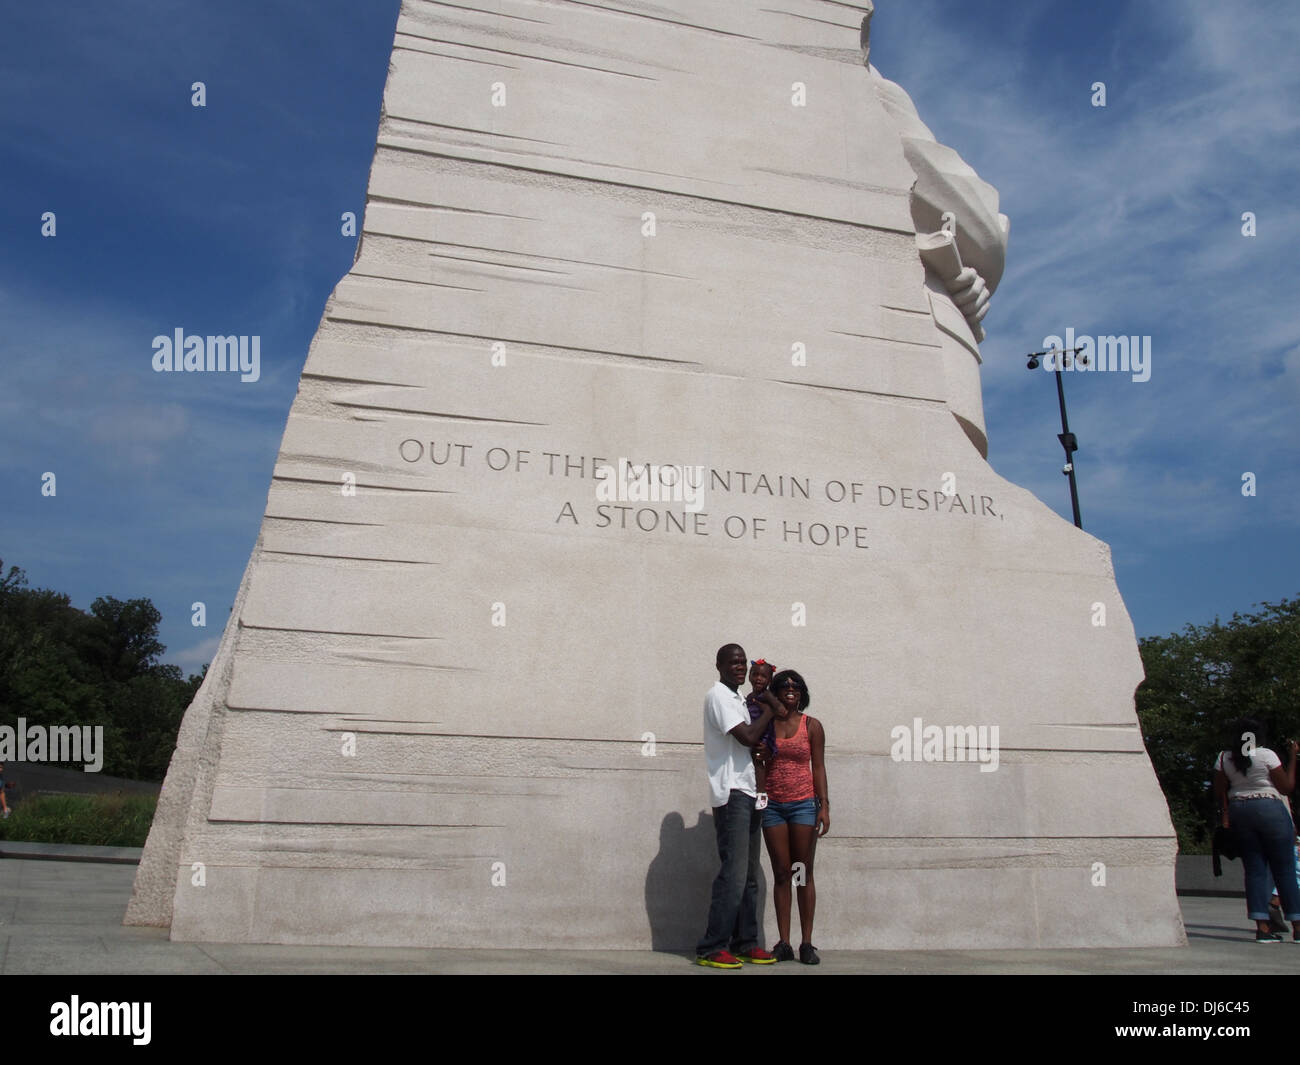 An African-American couple and their child pose for a photo at the Martin Luther King Jr. Memorial in Washington, D.C., USA - Stock Image